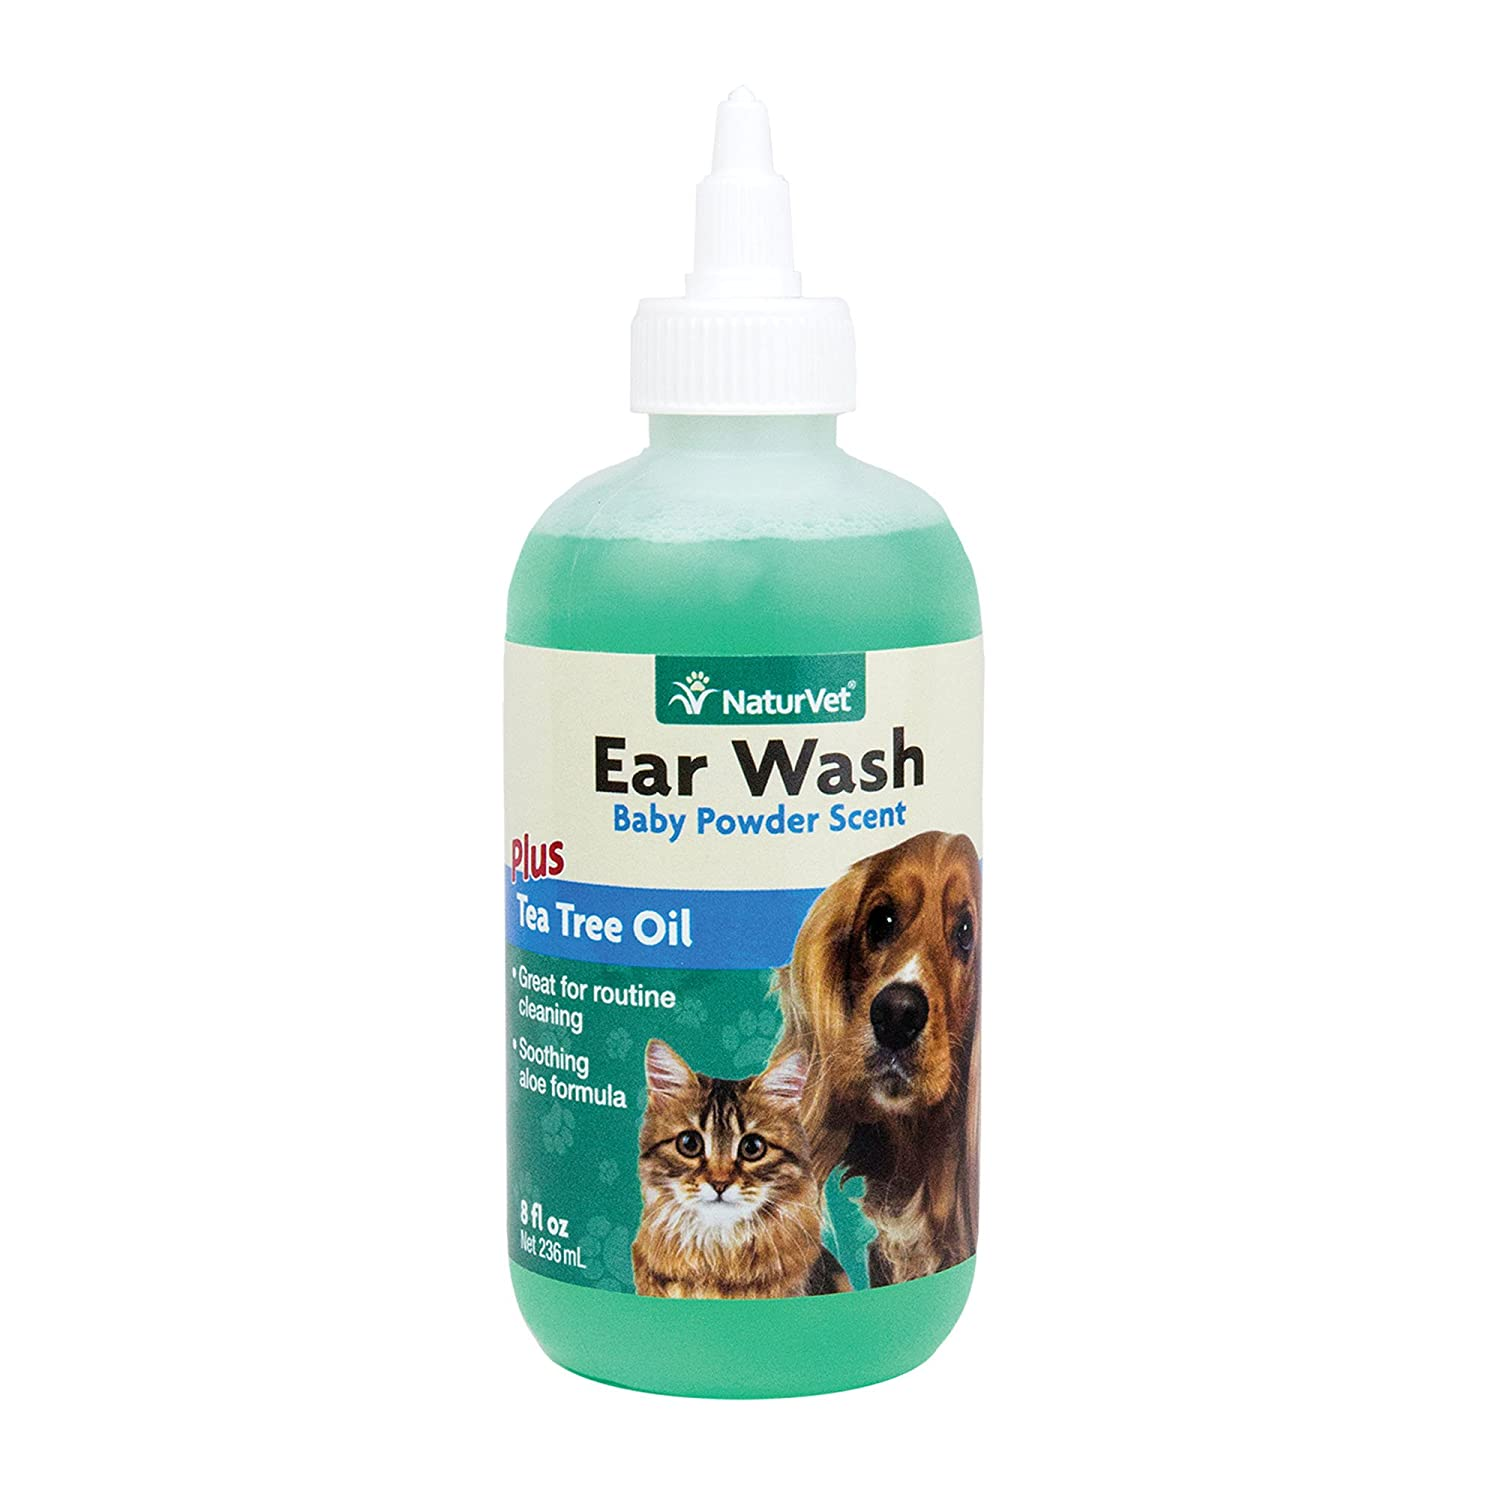 Gentle Pet Ear Wash & Odor Reducing Treatment with Aloe & Tea Tree Oil, Safe for All Dogs & Cats, Made by NaturVet AniPet Animal Supply 978042